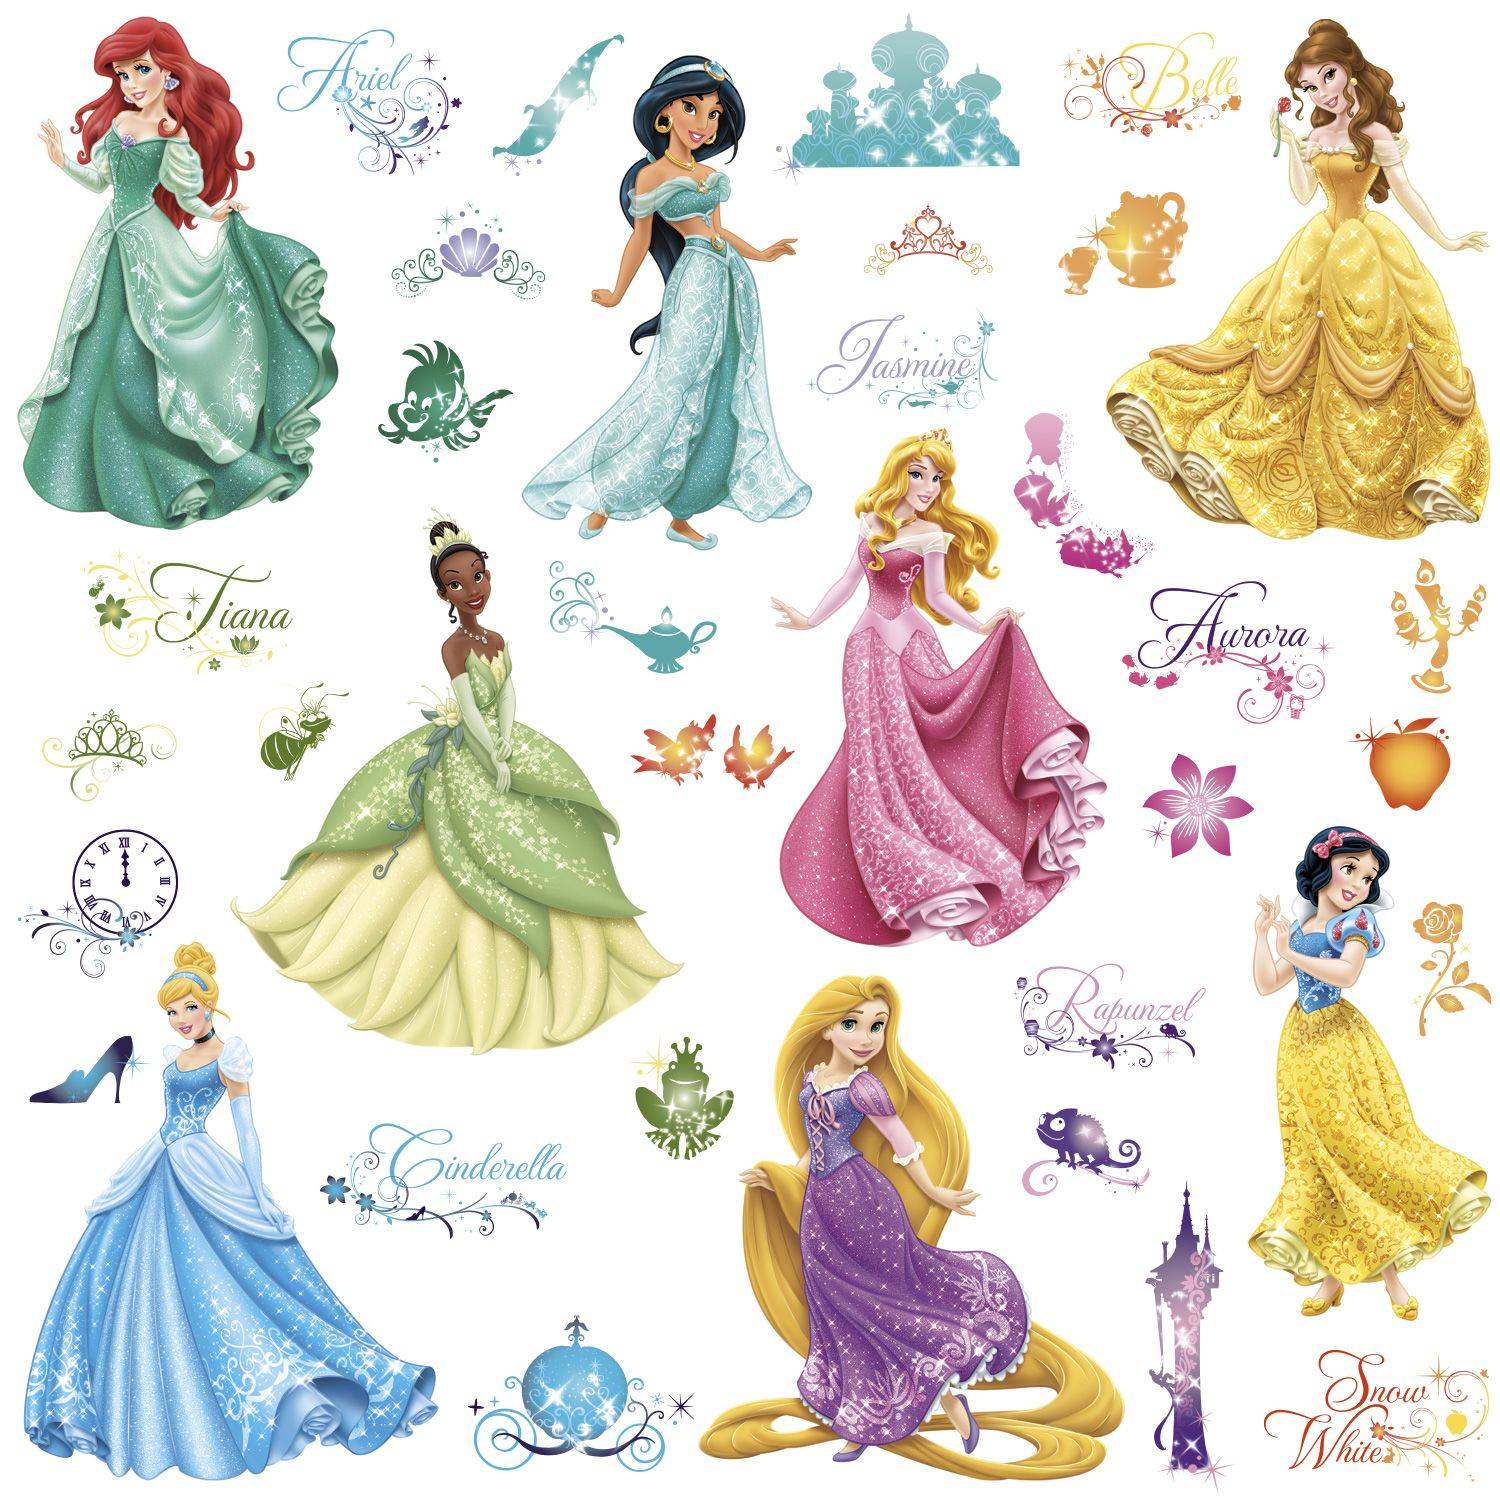 Celebrate royalty, enchantment, and romance with the Disney Princess characters. These beautiful Disney Princess wall decals feature Cinderella, Ariel, Tiana, Rapunzel, and more. The decals can be applied to any smooth surface, and safely removed and re-applied without any damage or residue. A perfect way to decorate your little princess's bedroom or play area!